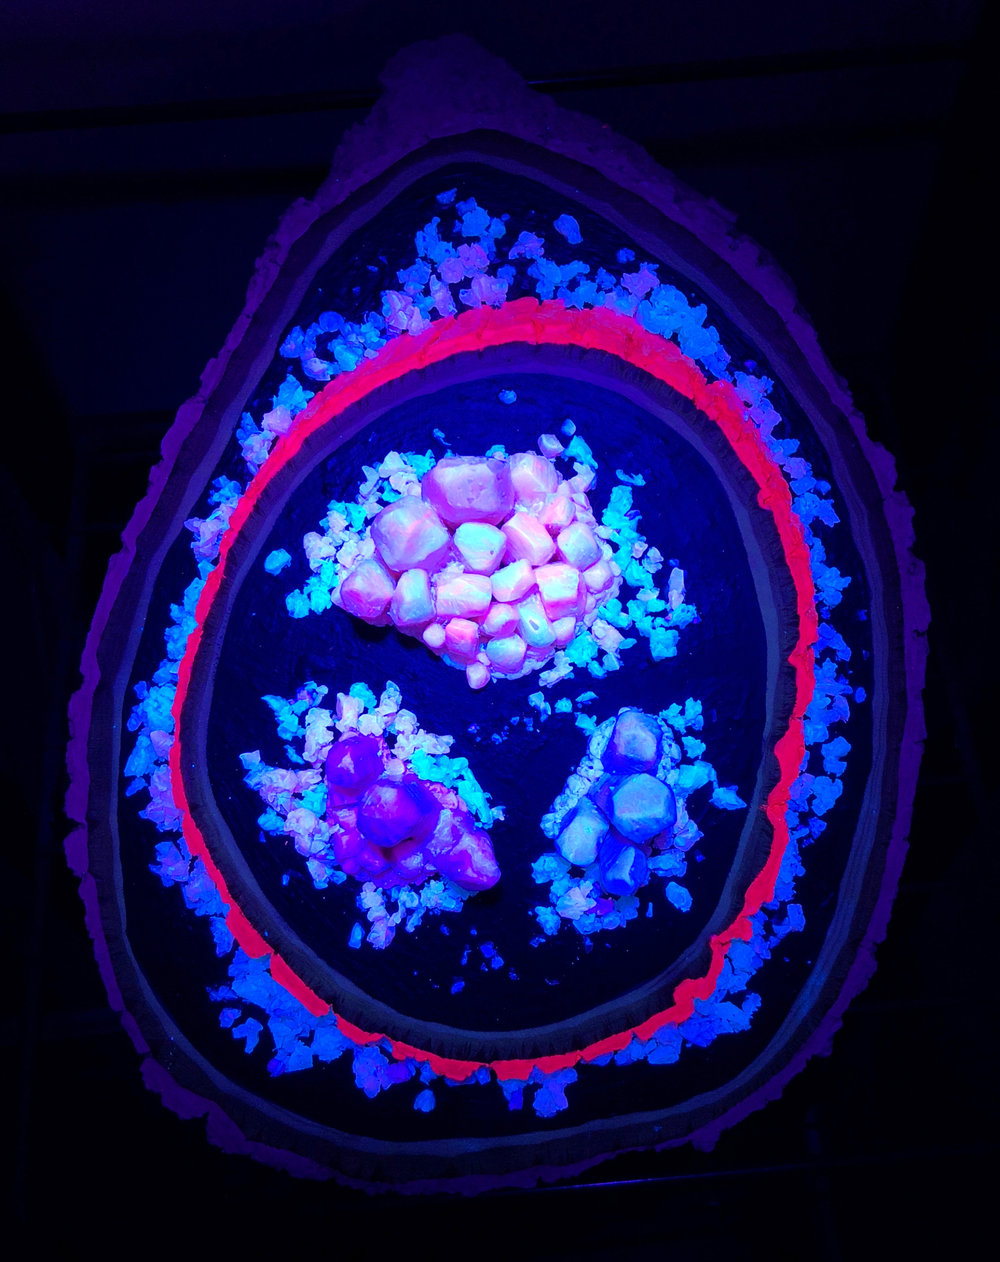 Impression of a Florescent Geode (Blacklight) - JD Shanley.jpg